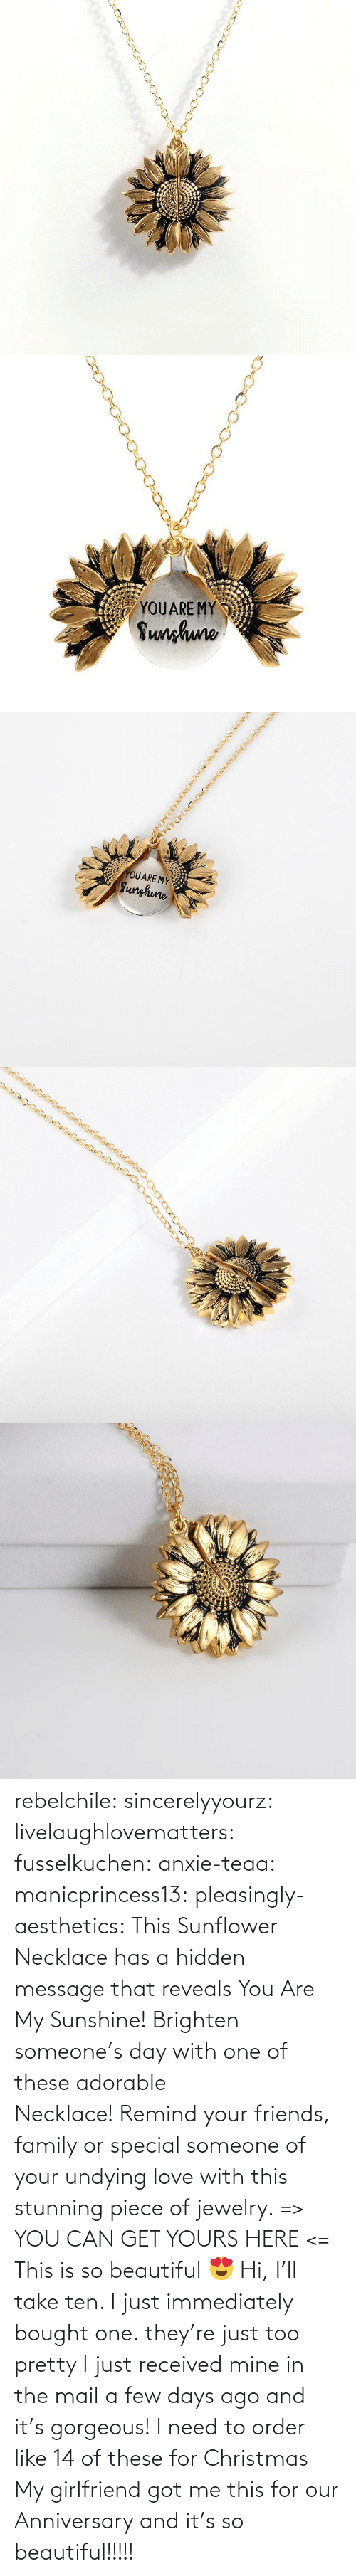 yours: rebelchile:  sincerelyyourz:  livelaughlovematters:  fusselkuchen:  anxie-teaa:   manicprincess13:   pleasingly-aesthetics:  This Sunflower Necklace has a hidden message that reveals You Are My Sunshine! Brighten someone's day with one of these adorable Necklace! Remind your friends, family or special someone of your undying love with this stunning piece of jewelry. => YOU CAN GET YOURS HERE <=   This is so beautiful 😍    Hi, I'll take ten.    I just immediately bought one. they're just too pretty   I just received mine in the mail a few days ago and it's gorgeous!   I need to order like 14 of these for Christmas    My girlfriend got me this for our Anniversary and it's so beautiful!!!!!